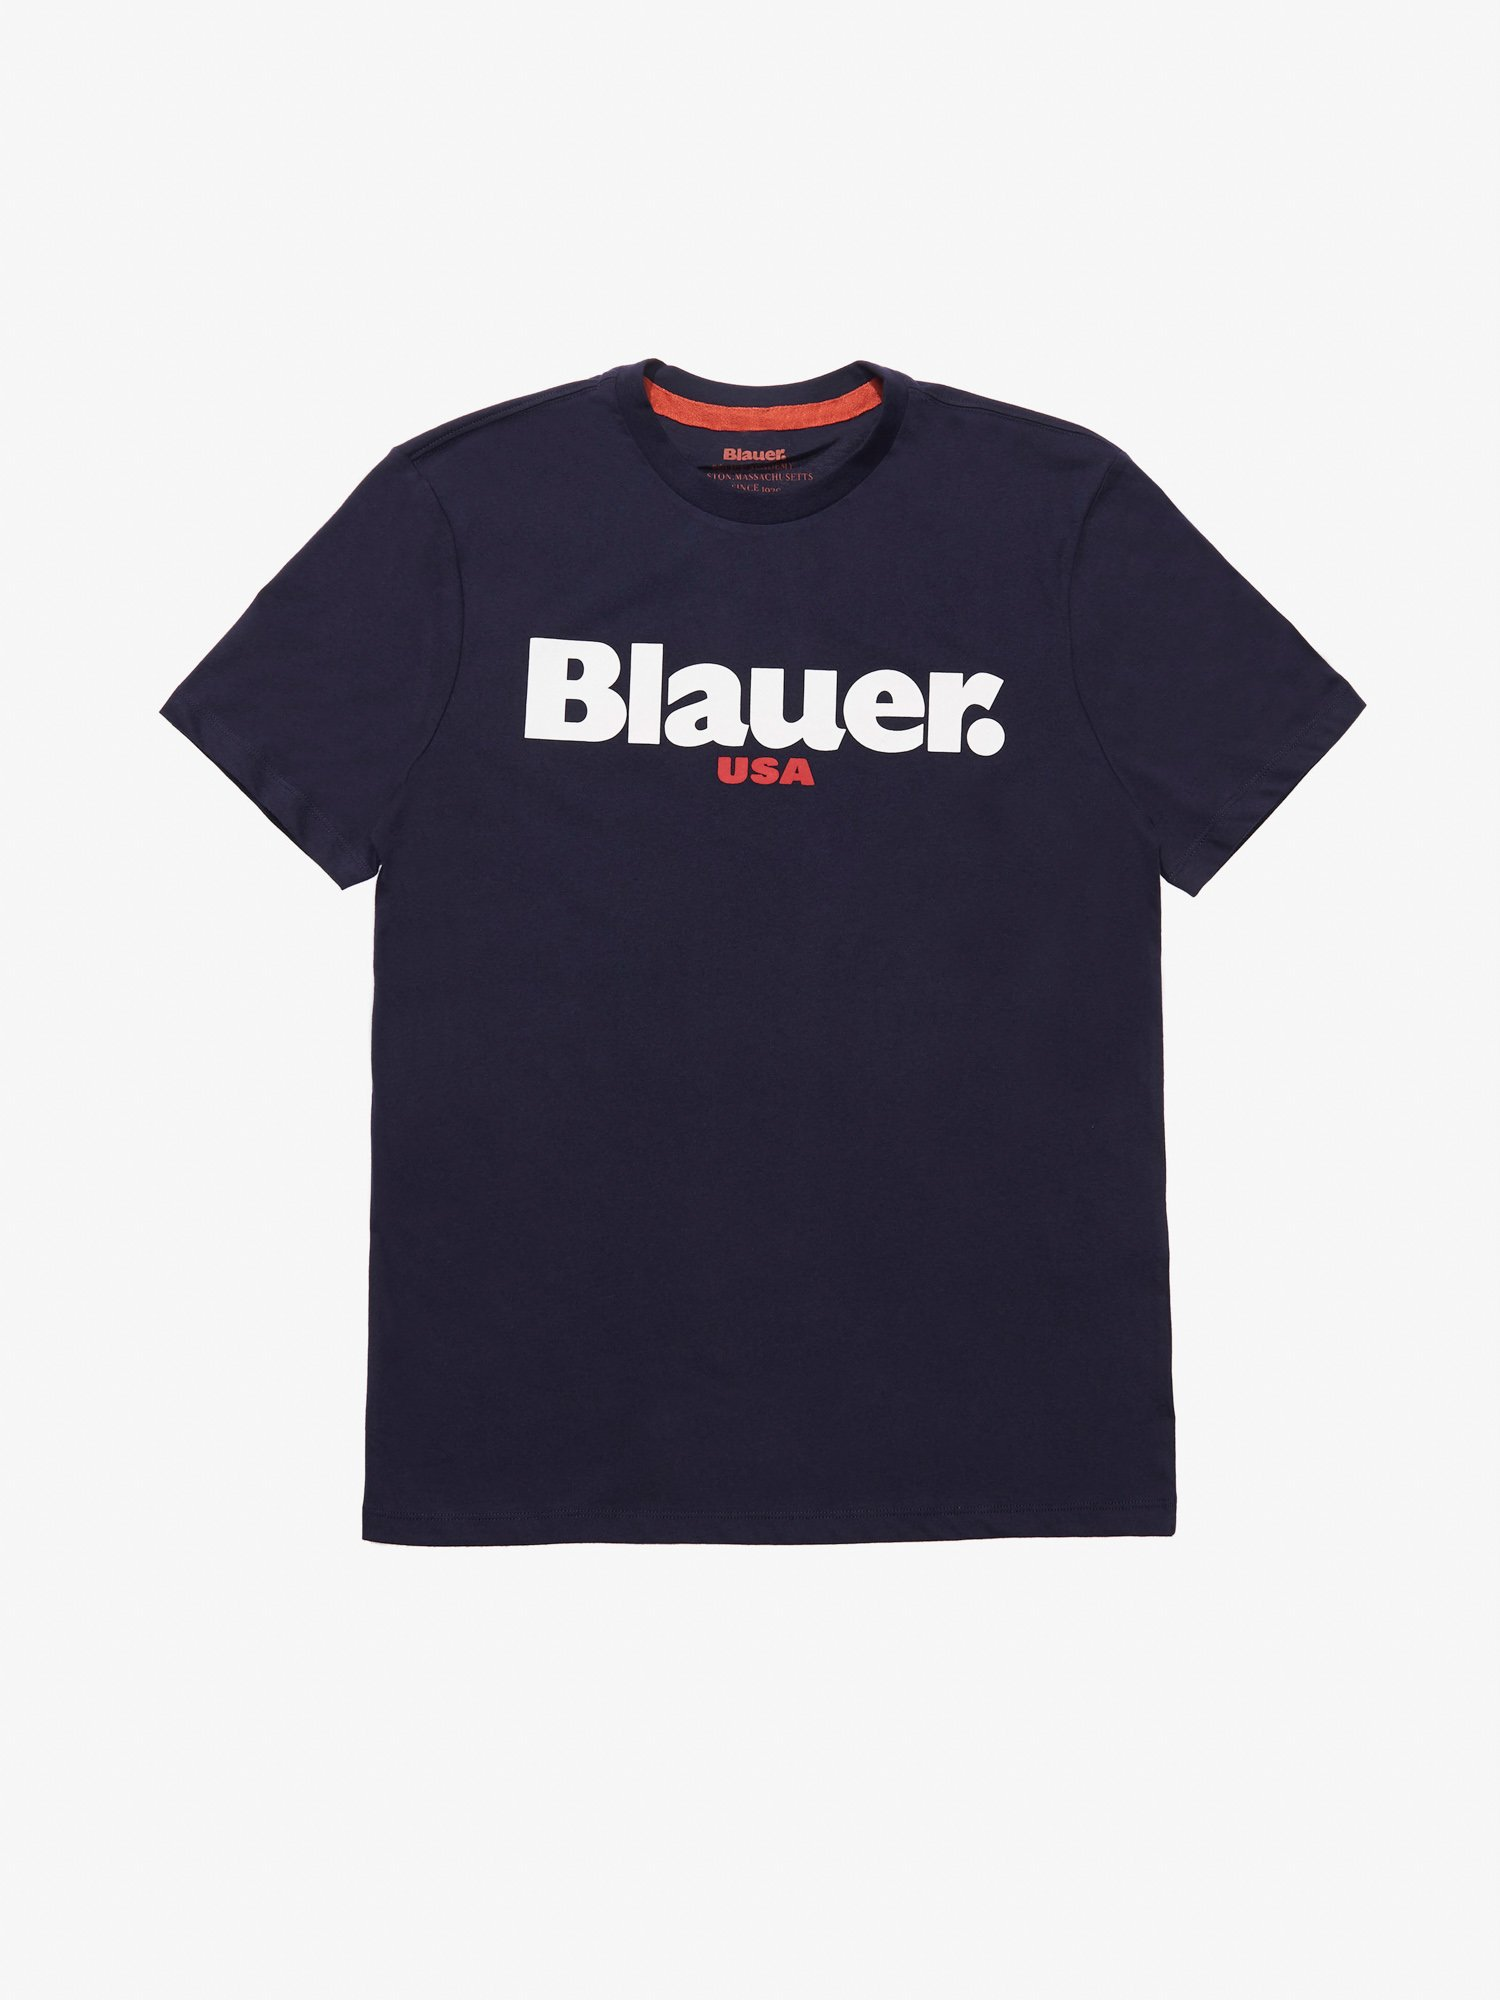 Blauer - CARBON WASHED BLAUER USA T-SHIRT - Dark Night Blue - Blauer